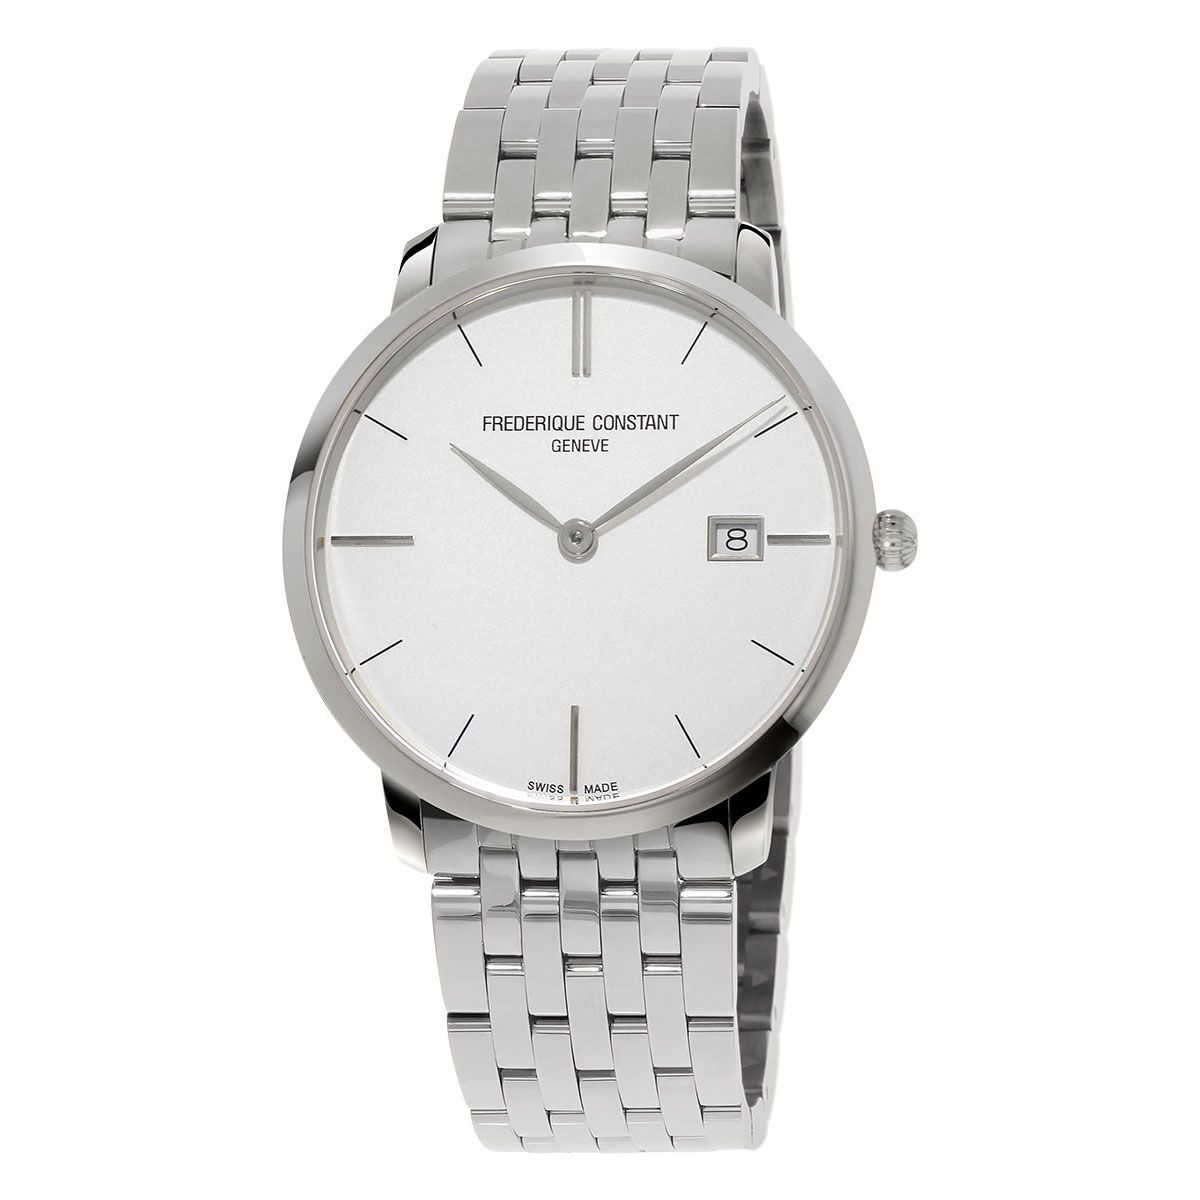 Frederiqu Constant mens watch stainless steel slimline white dial FC-220S5S6B